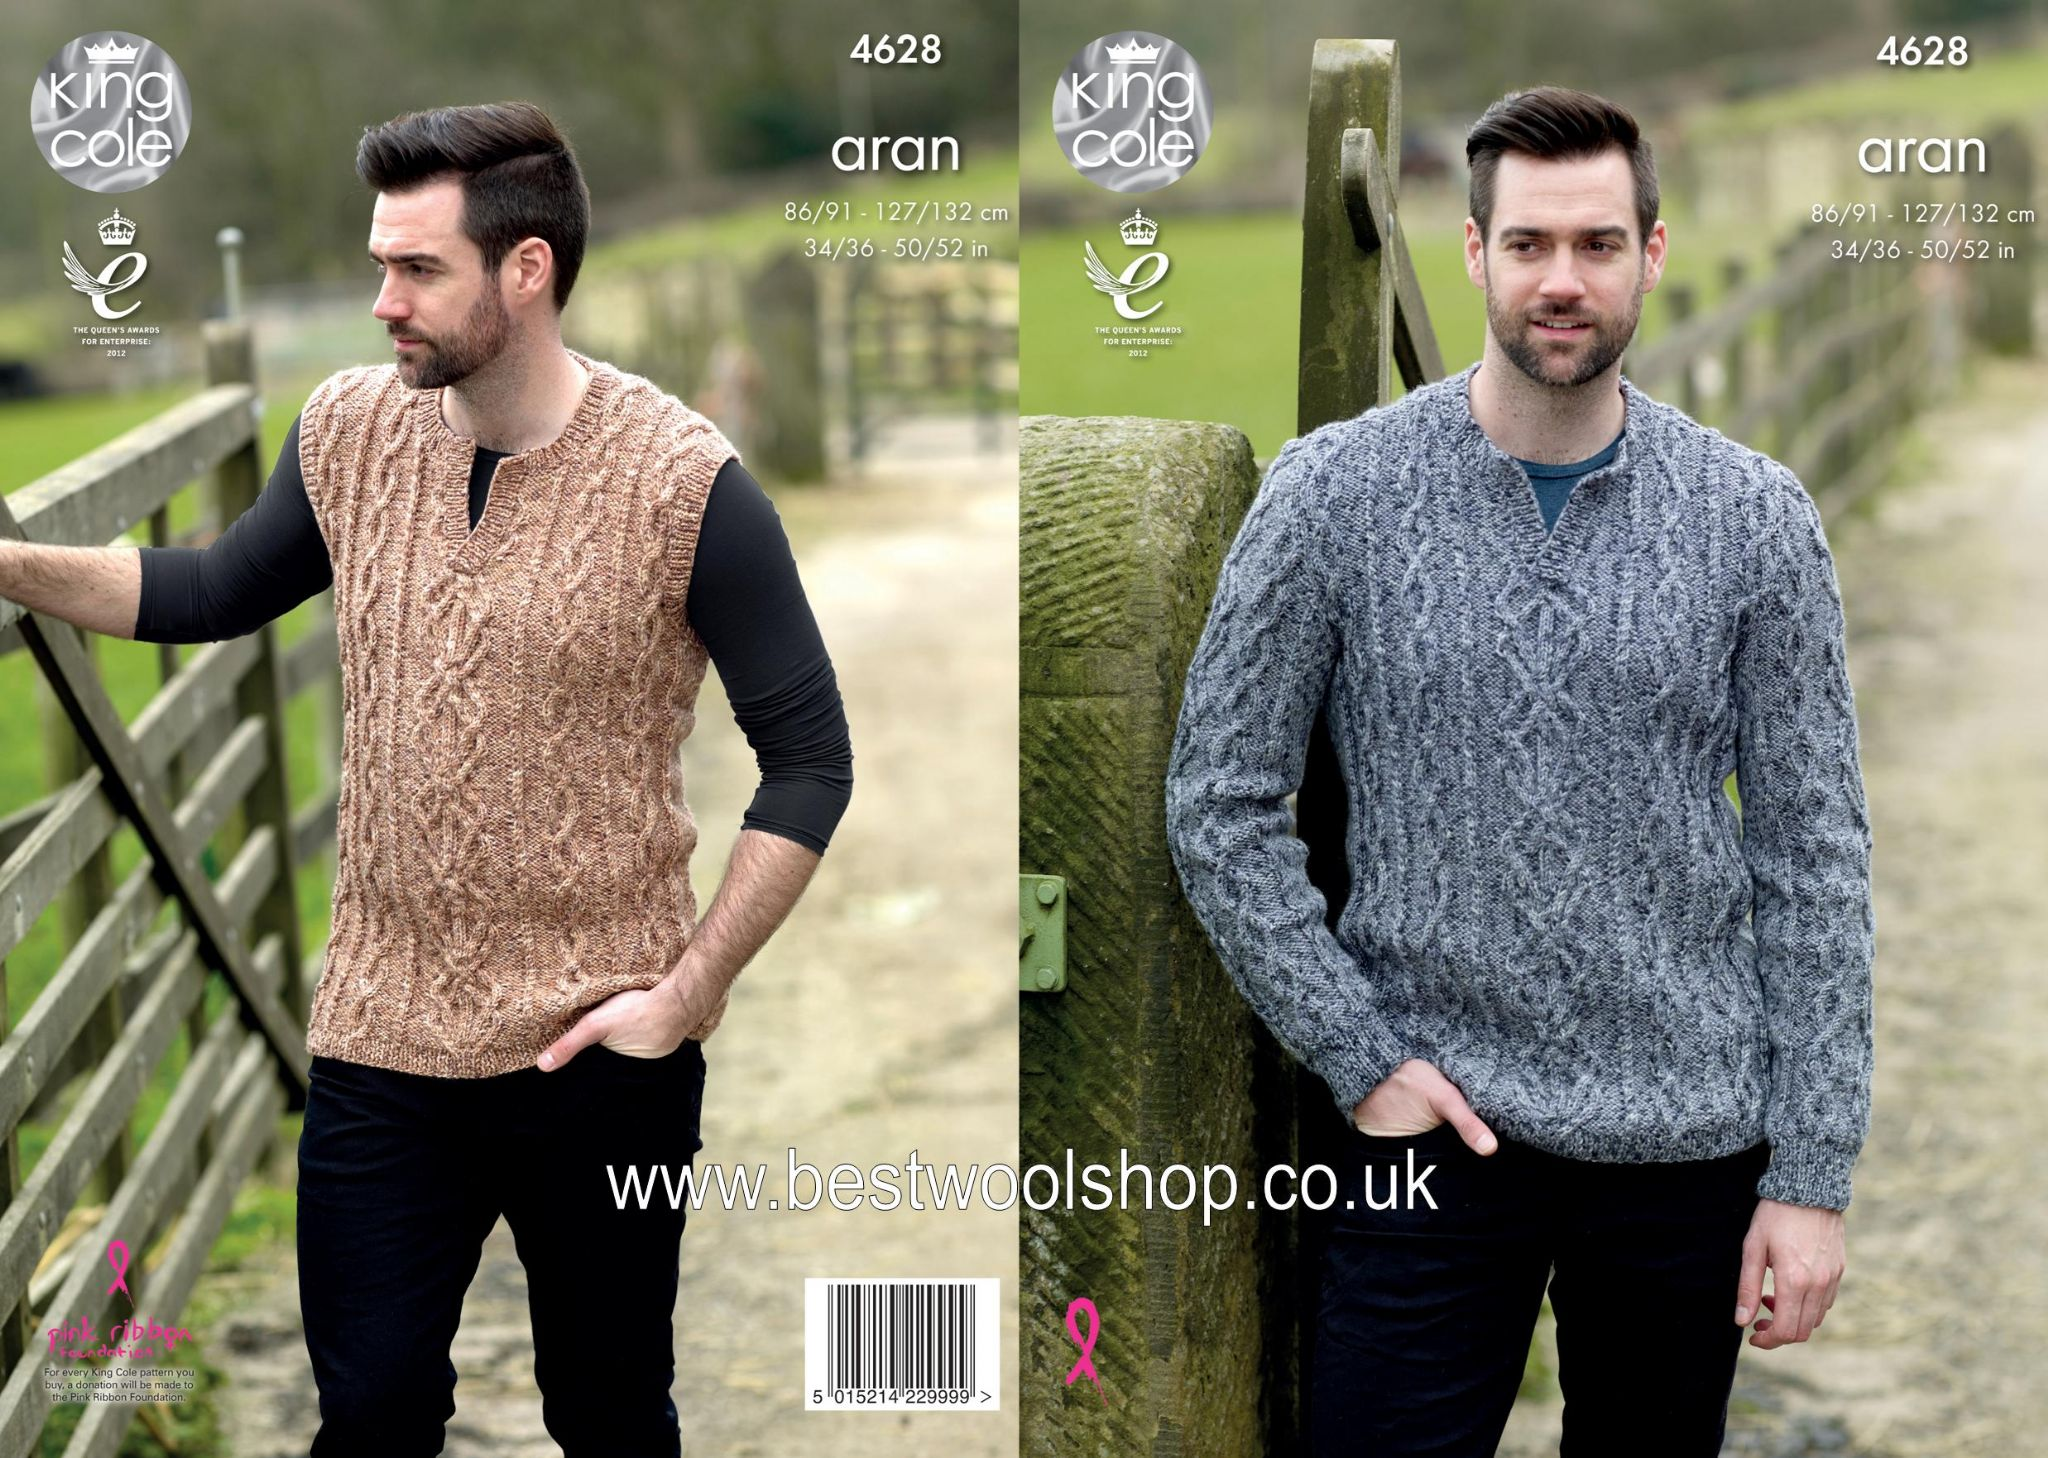 4628 - KING COLE FASHION ARAN COMBO MENS CABLED OPEN FRONT SWEATER ...